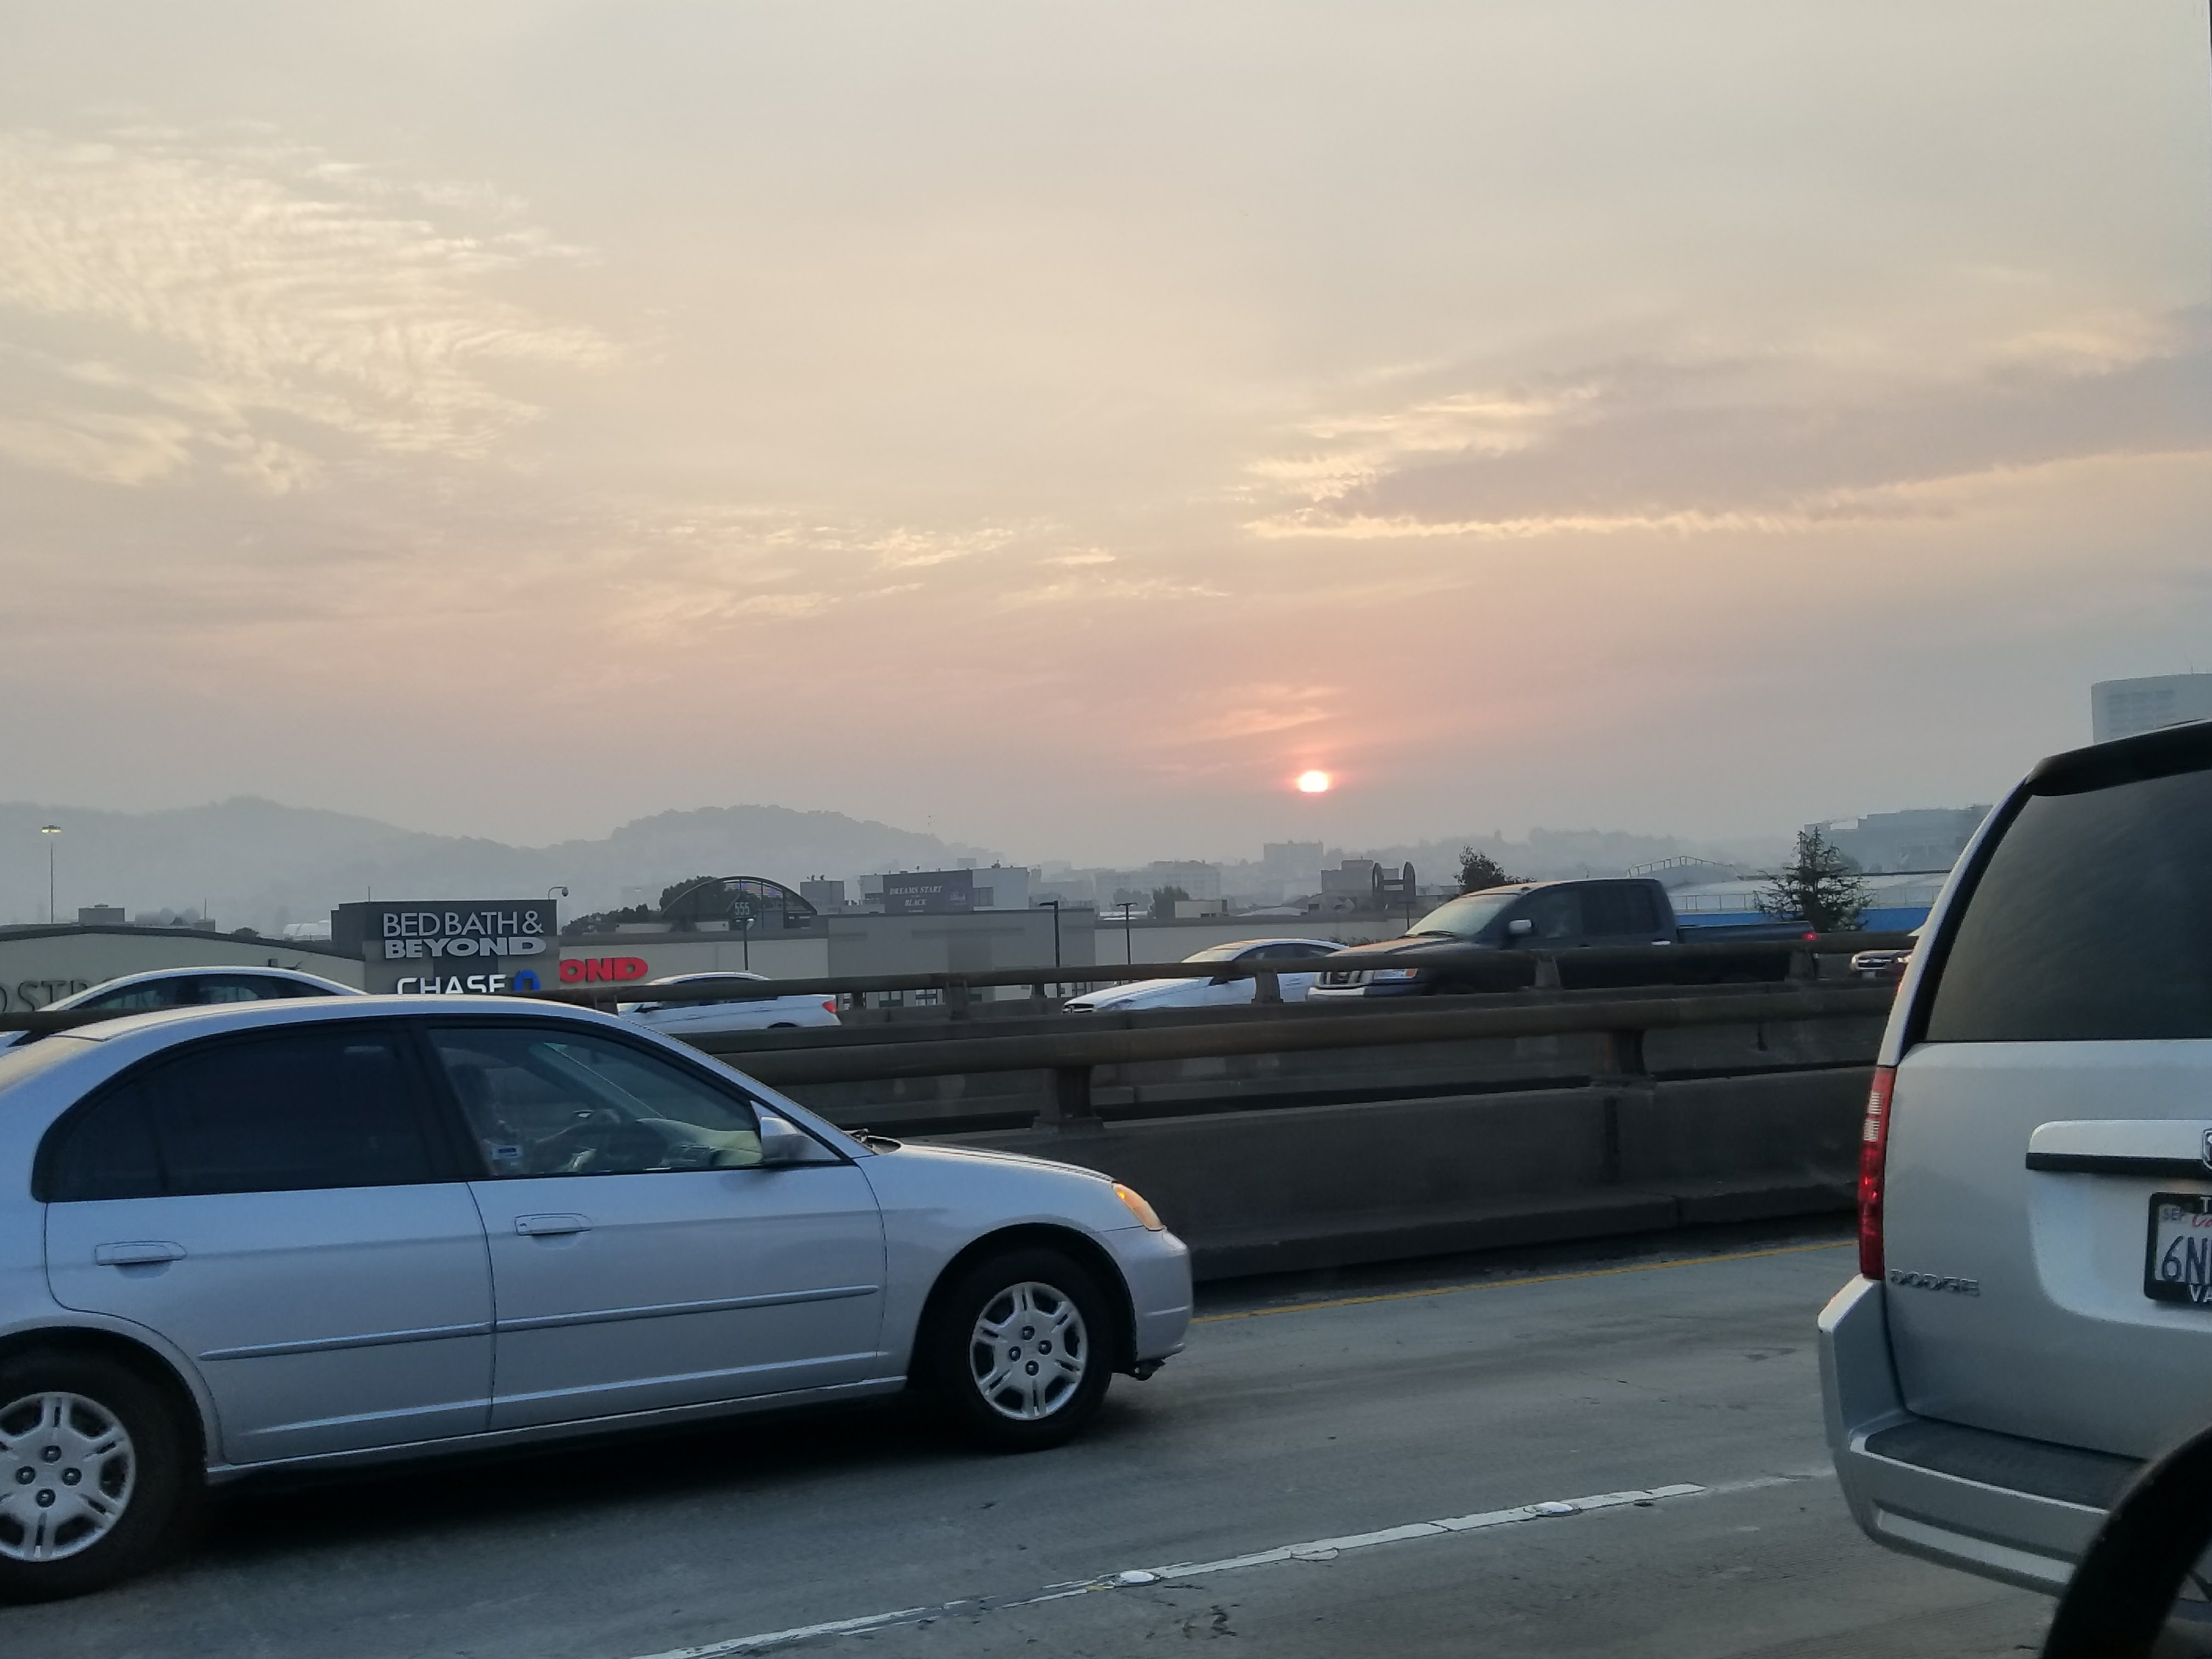 Sunset from Hwy 101